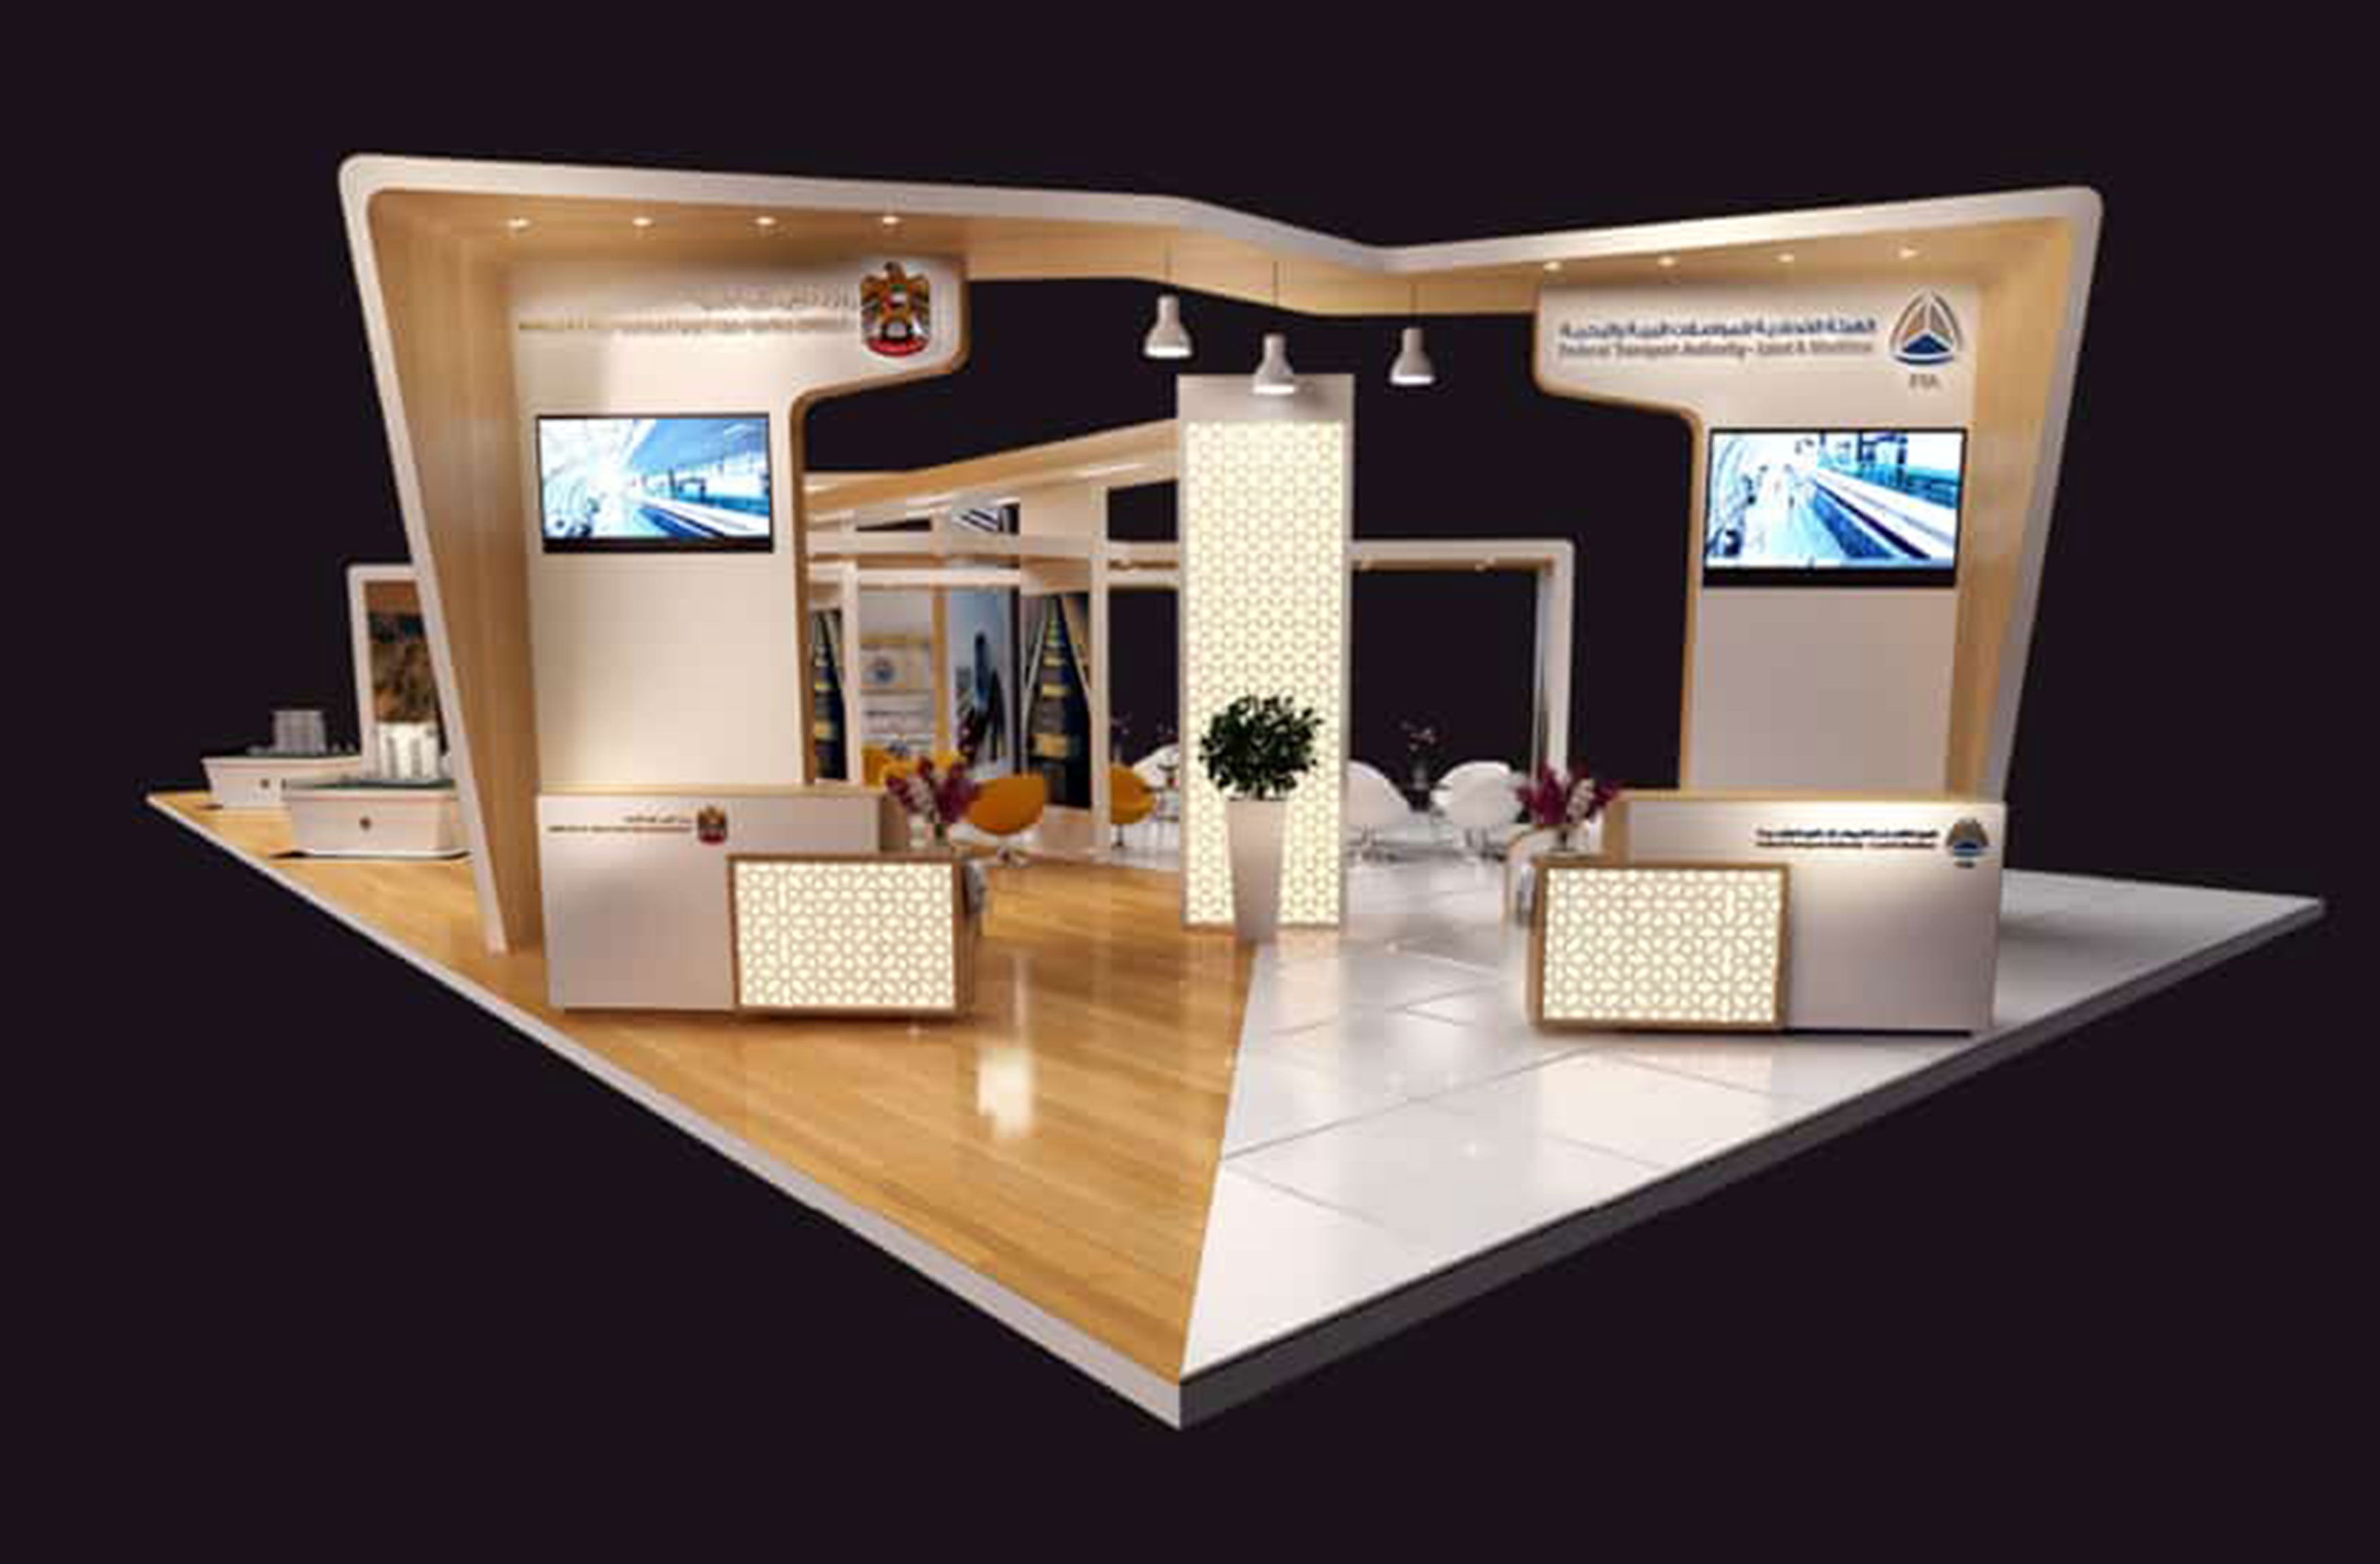 Exhibition Stand Projects : Federal transport authority exhibition stand excelpixels